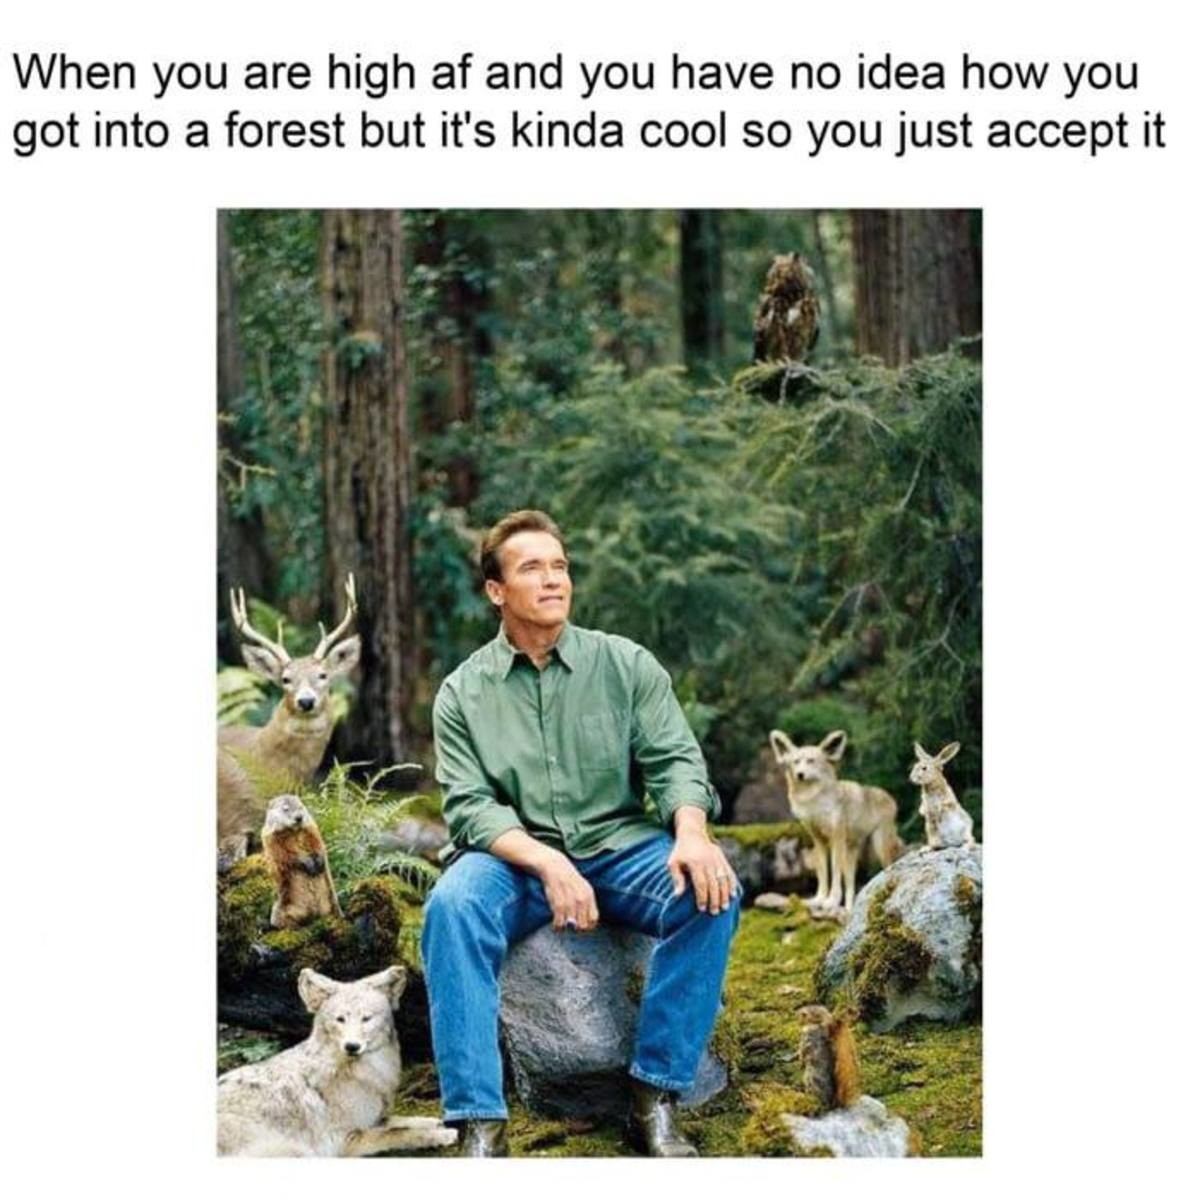 Once every month. . When you are high at and you have no idea how you got into a forest but it' s kinda cool so you just accept it. when the druid starts communing with nature, sometimes nature just comes for a chat